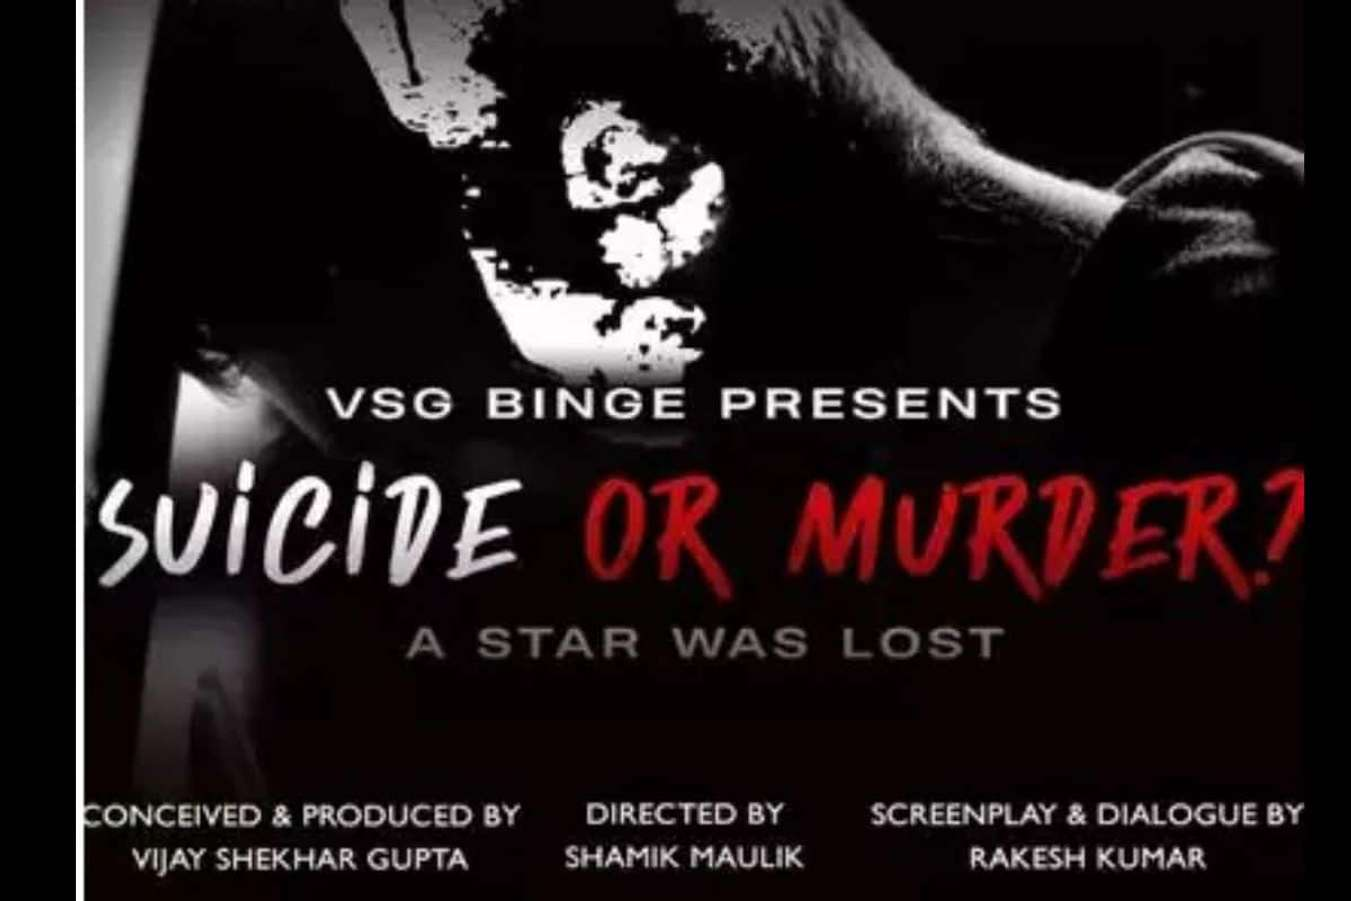 Suicide or Murder: A Star Was Lost